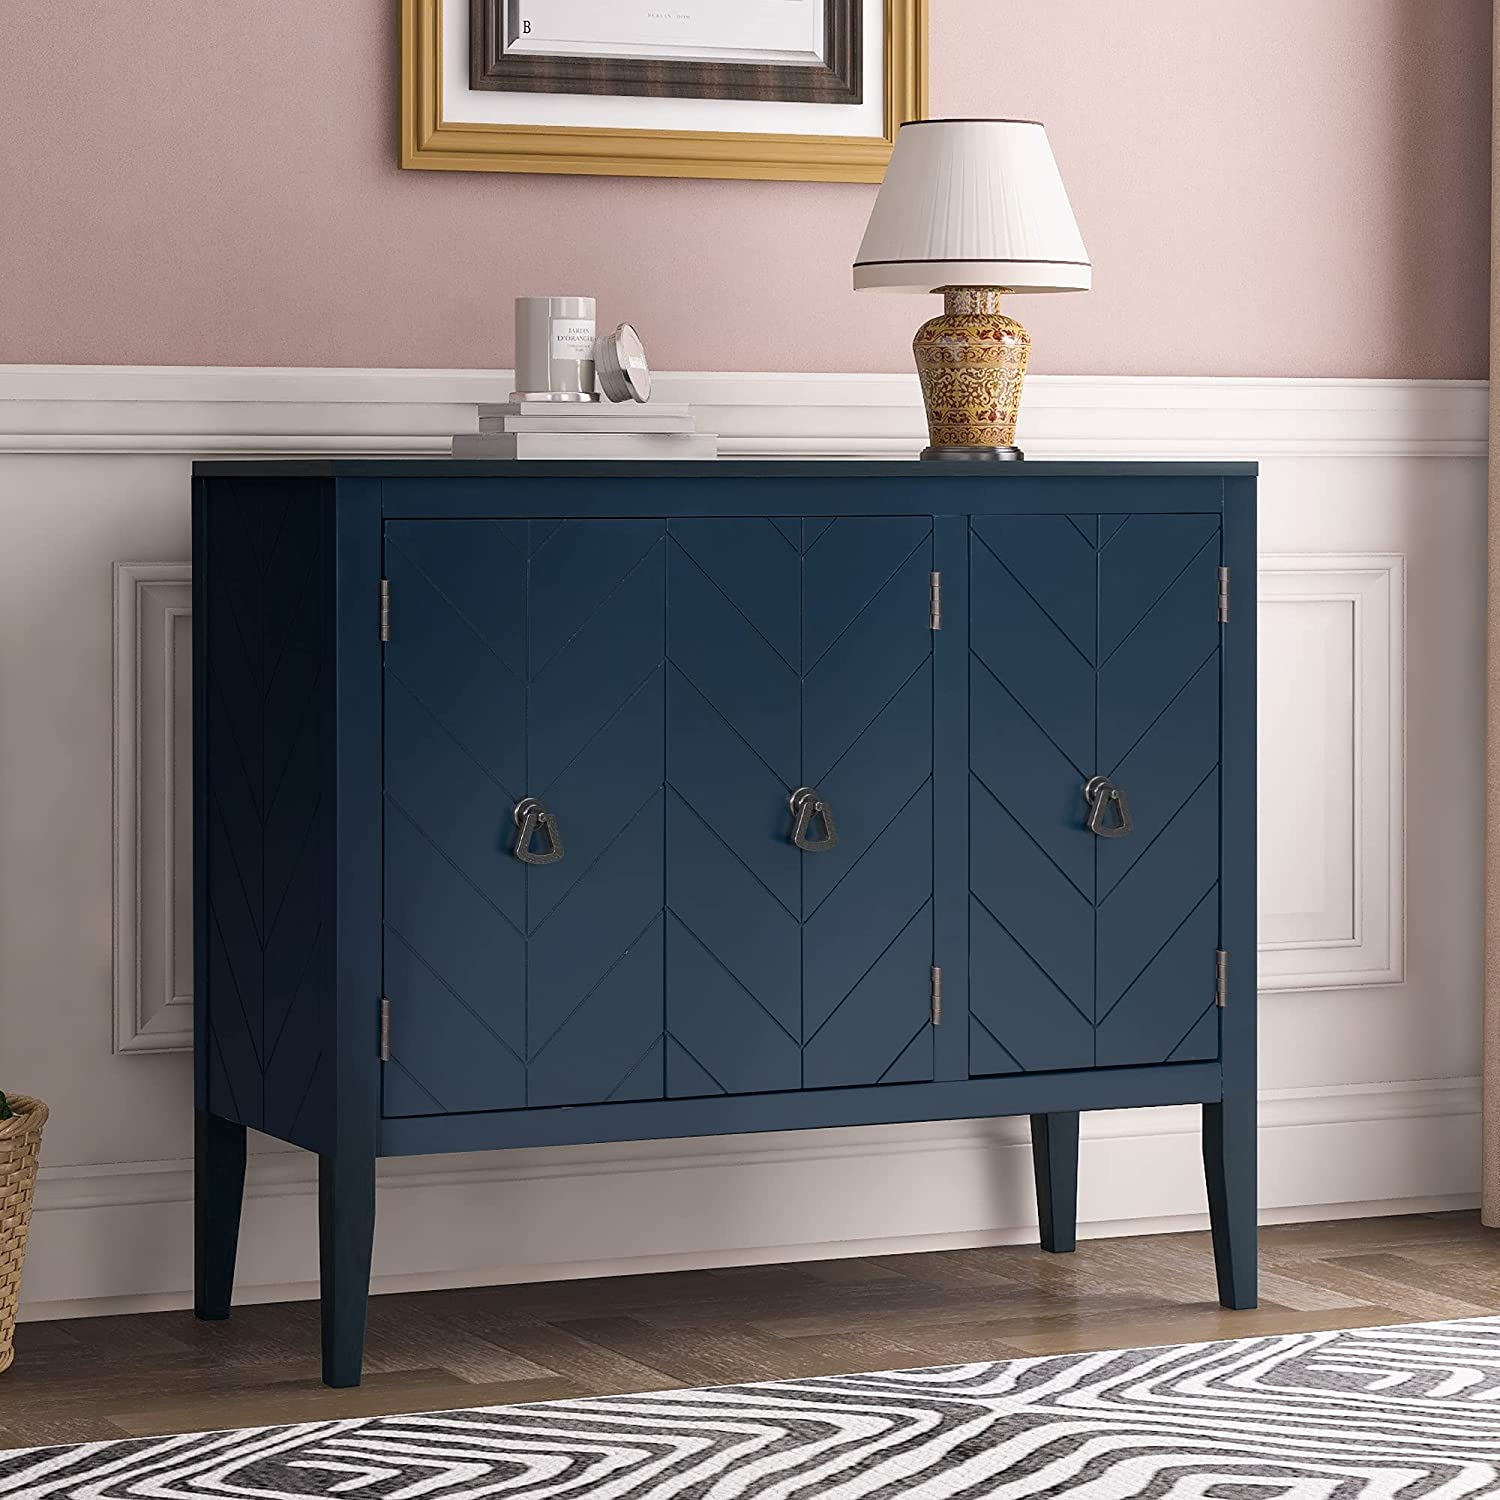 Don't miss the campaign Knocbel Over item handling Antique Storage Cabinet with and Shelf Adjustable Doors